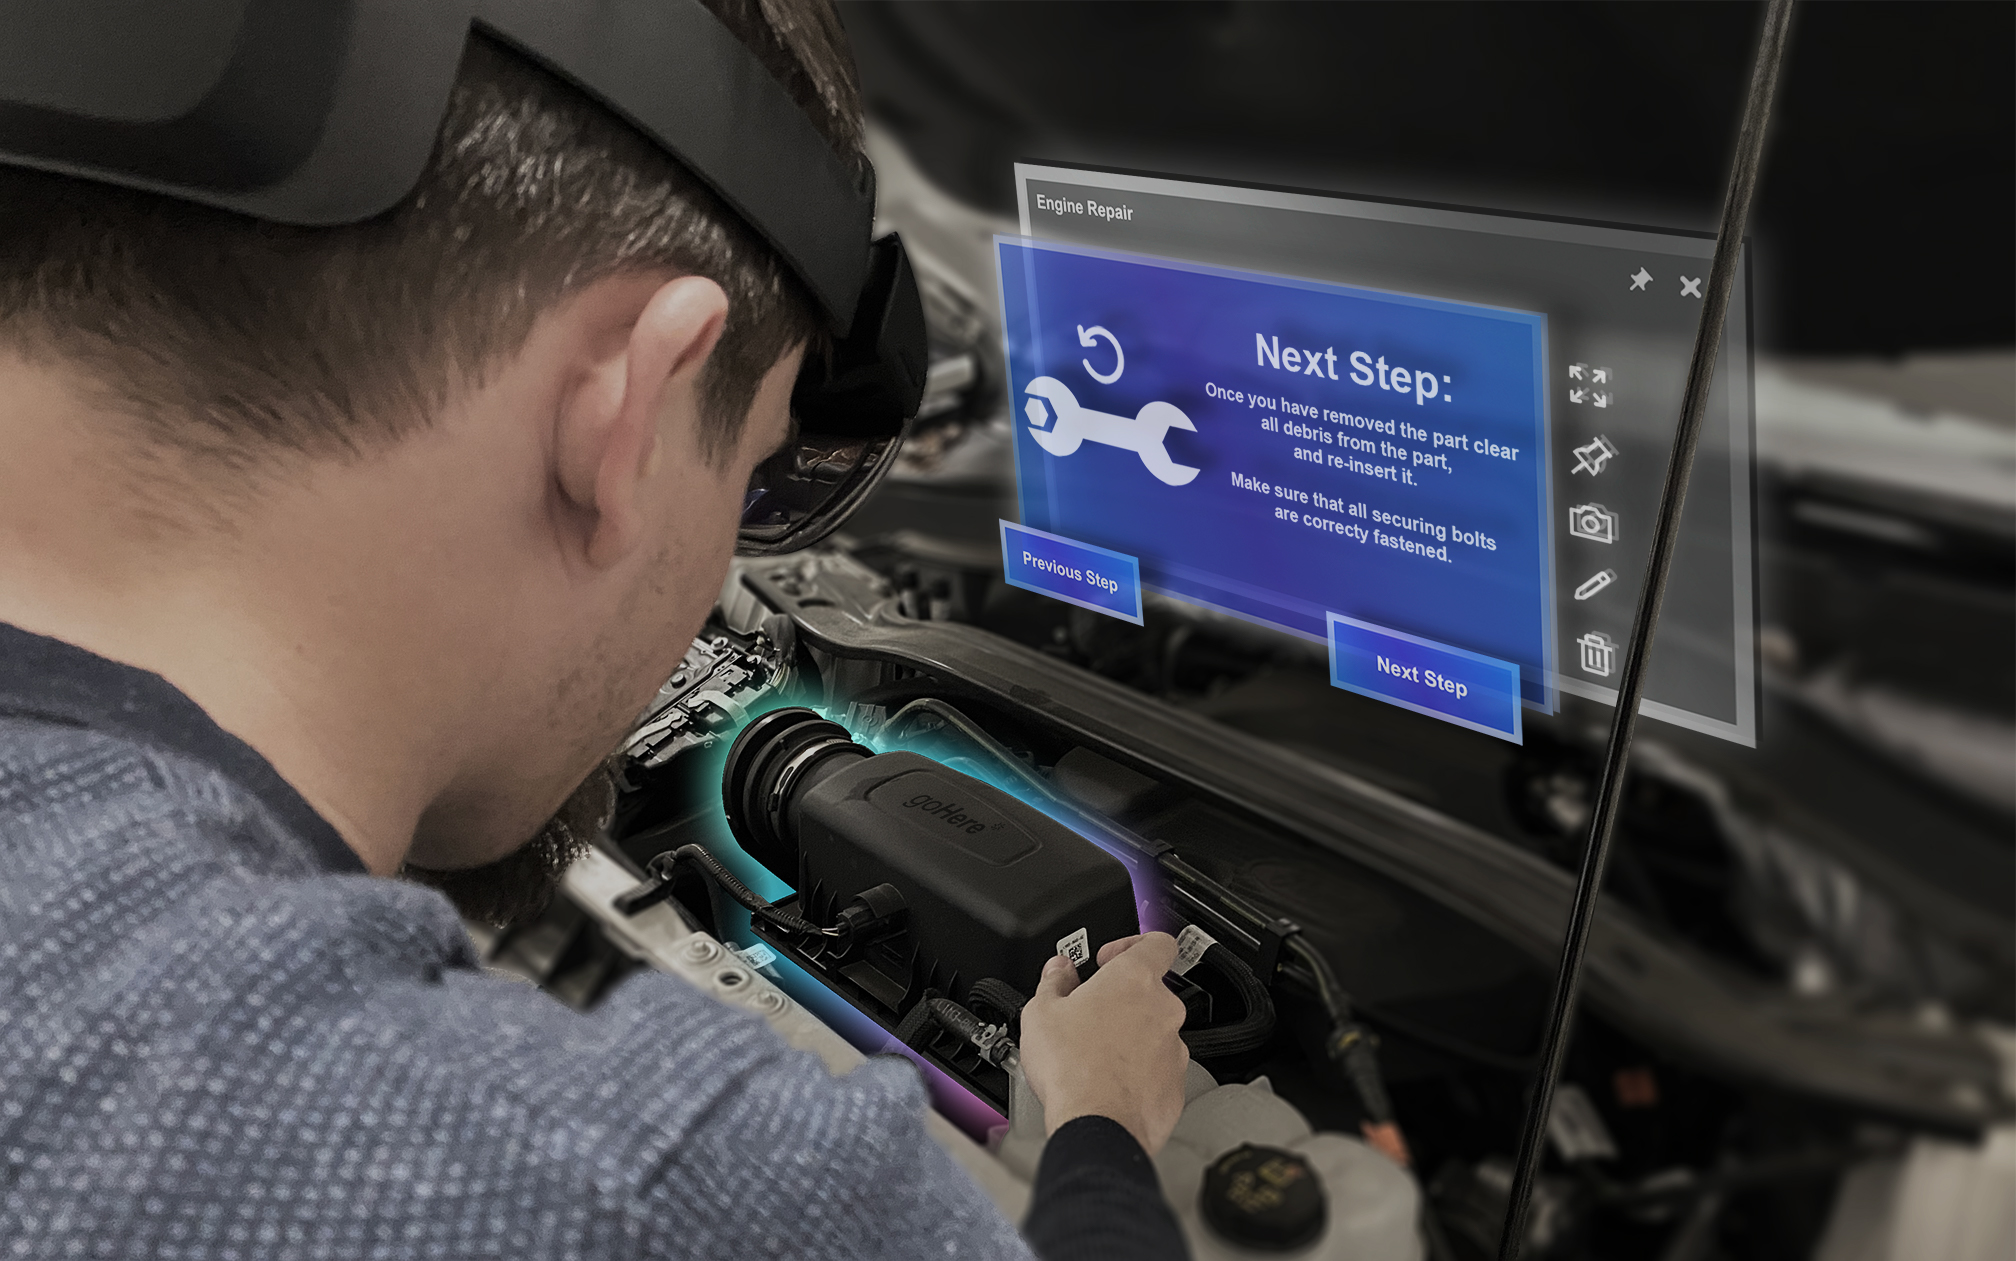 Trimble's XR 10 with Microsoft's HoloLens is bringing mixed reality to construction sites. It's no wonder Microsoft is crushing the competition with solutions like this.